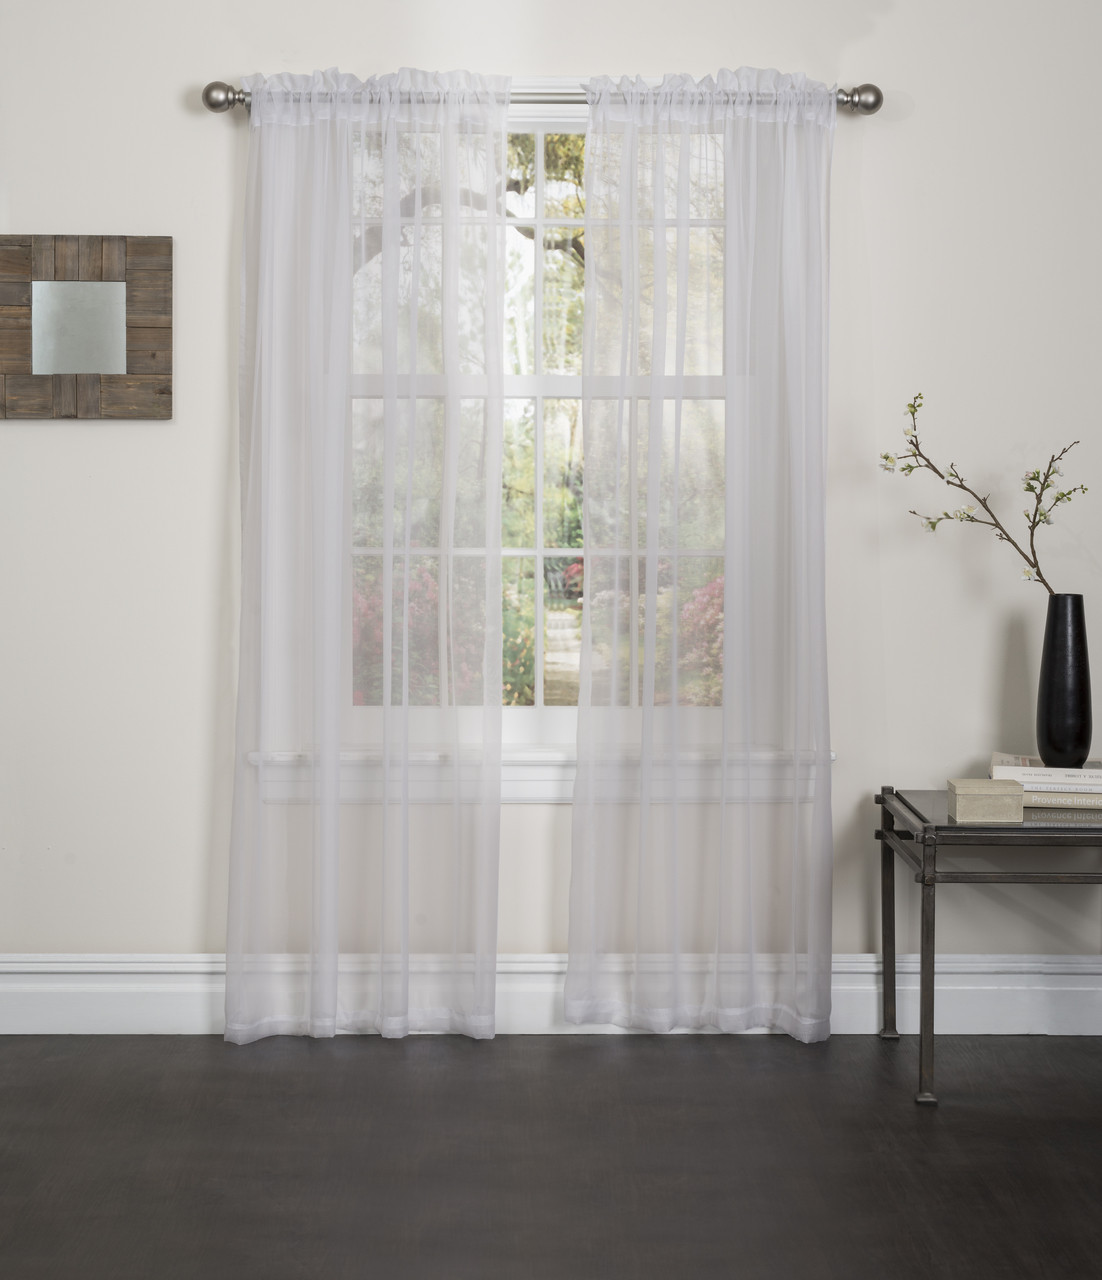 curtain com at alibaba design manufacturers suppliers voile fabric sheer curtains showroom and embroidered latest